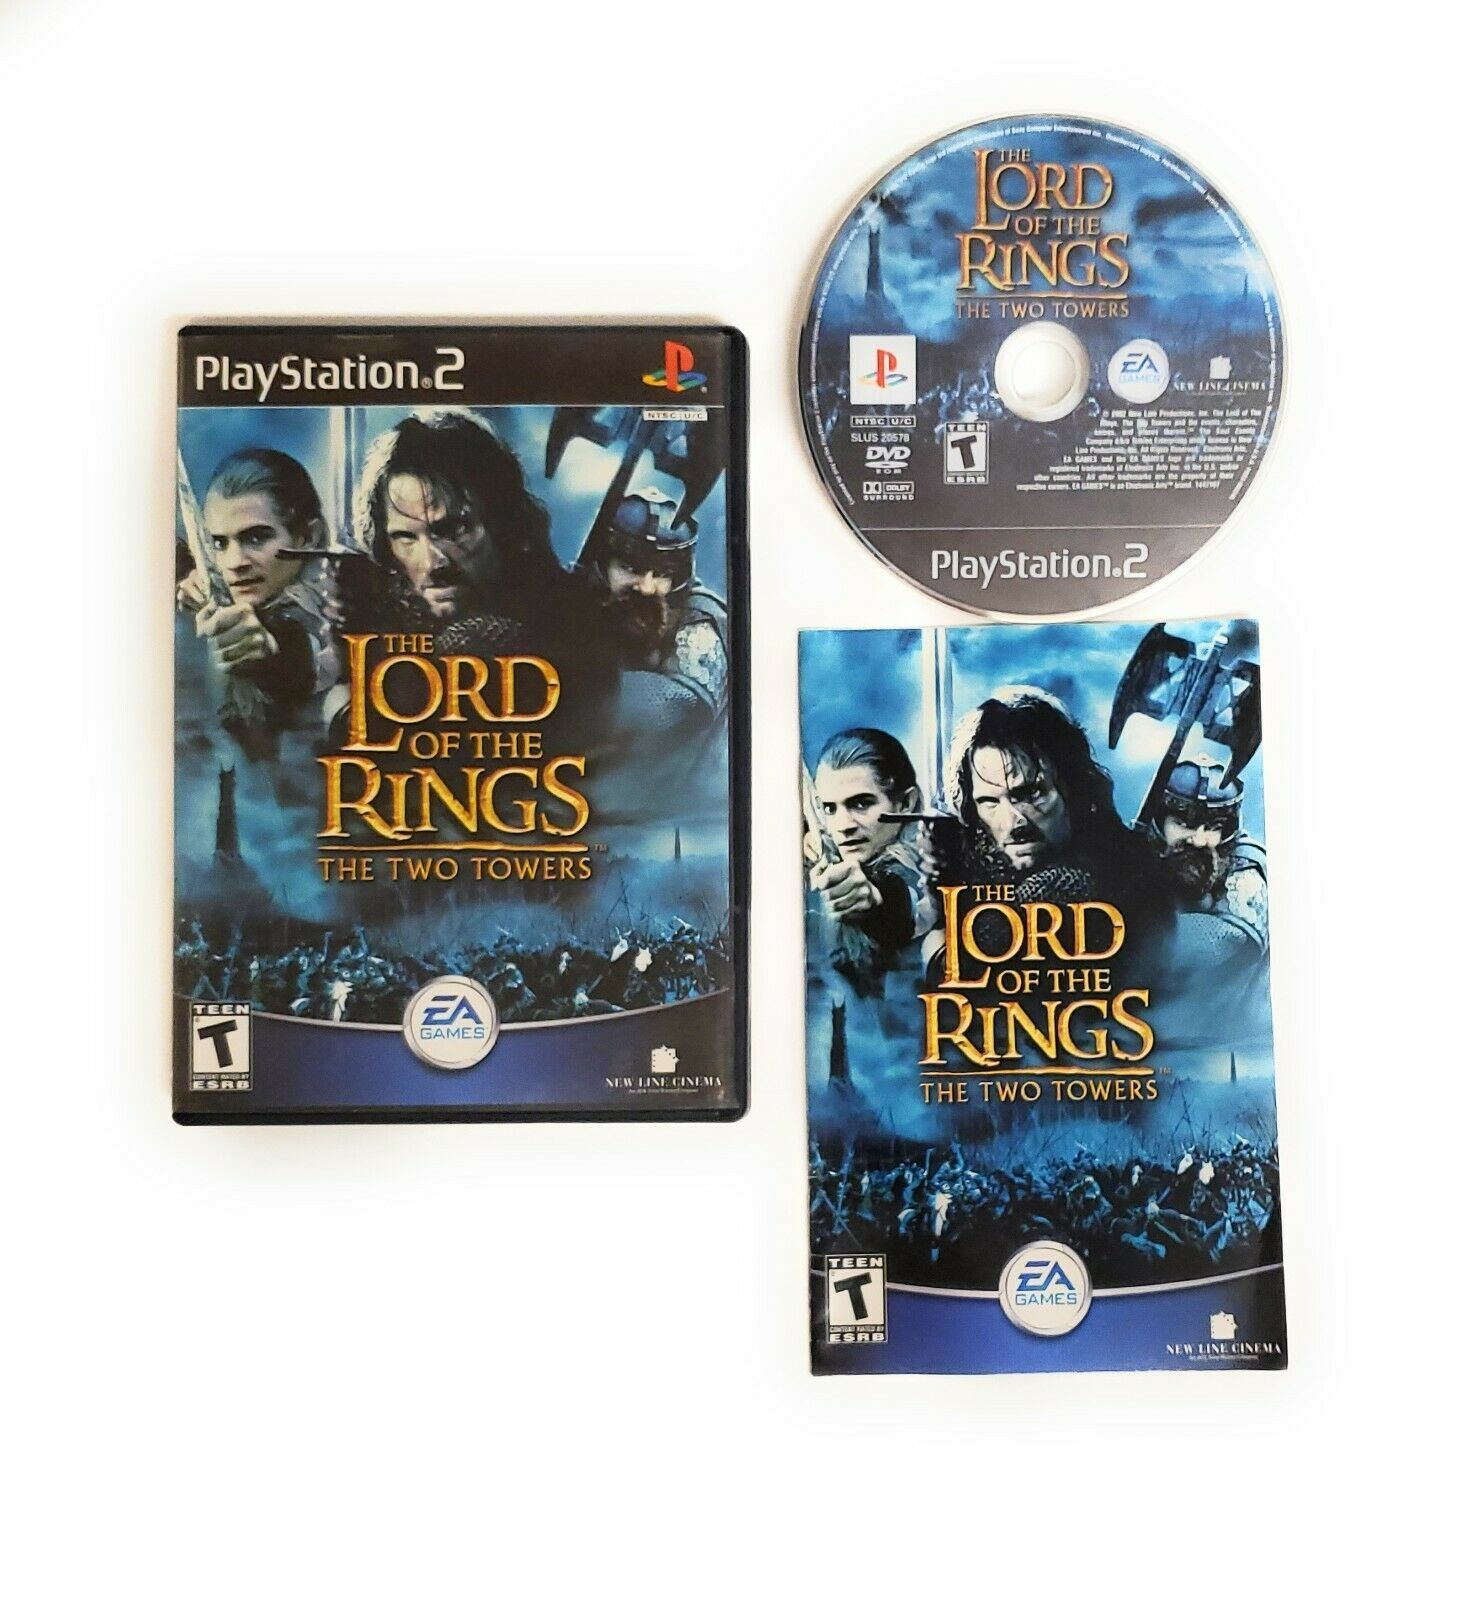 Lord of the Rings The Two Towers (PlayStation 2 PS2 2004) Complete w Manual CIB - $10.40